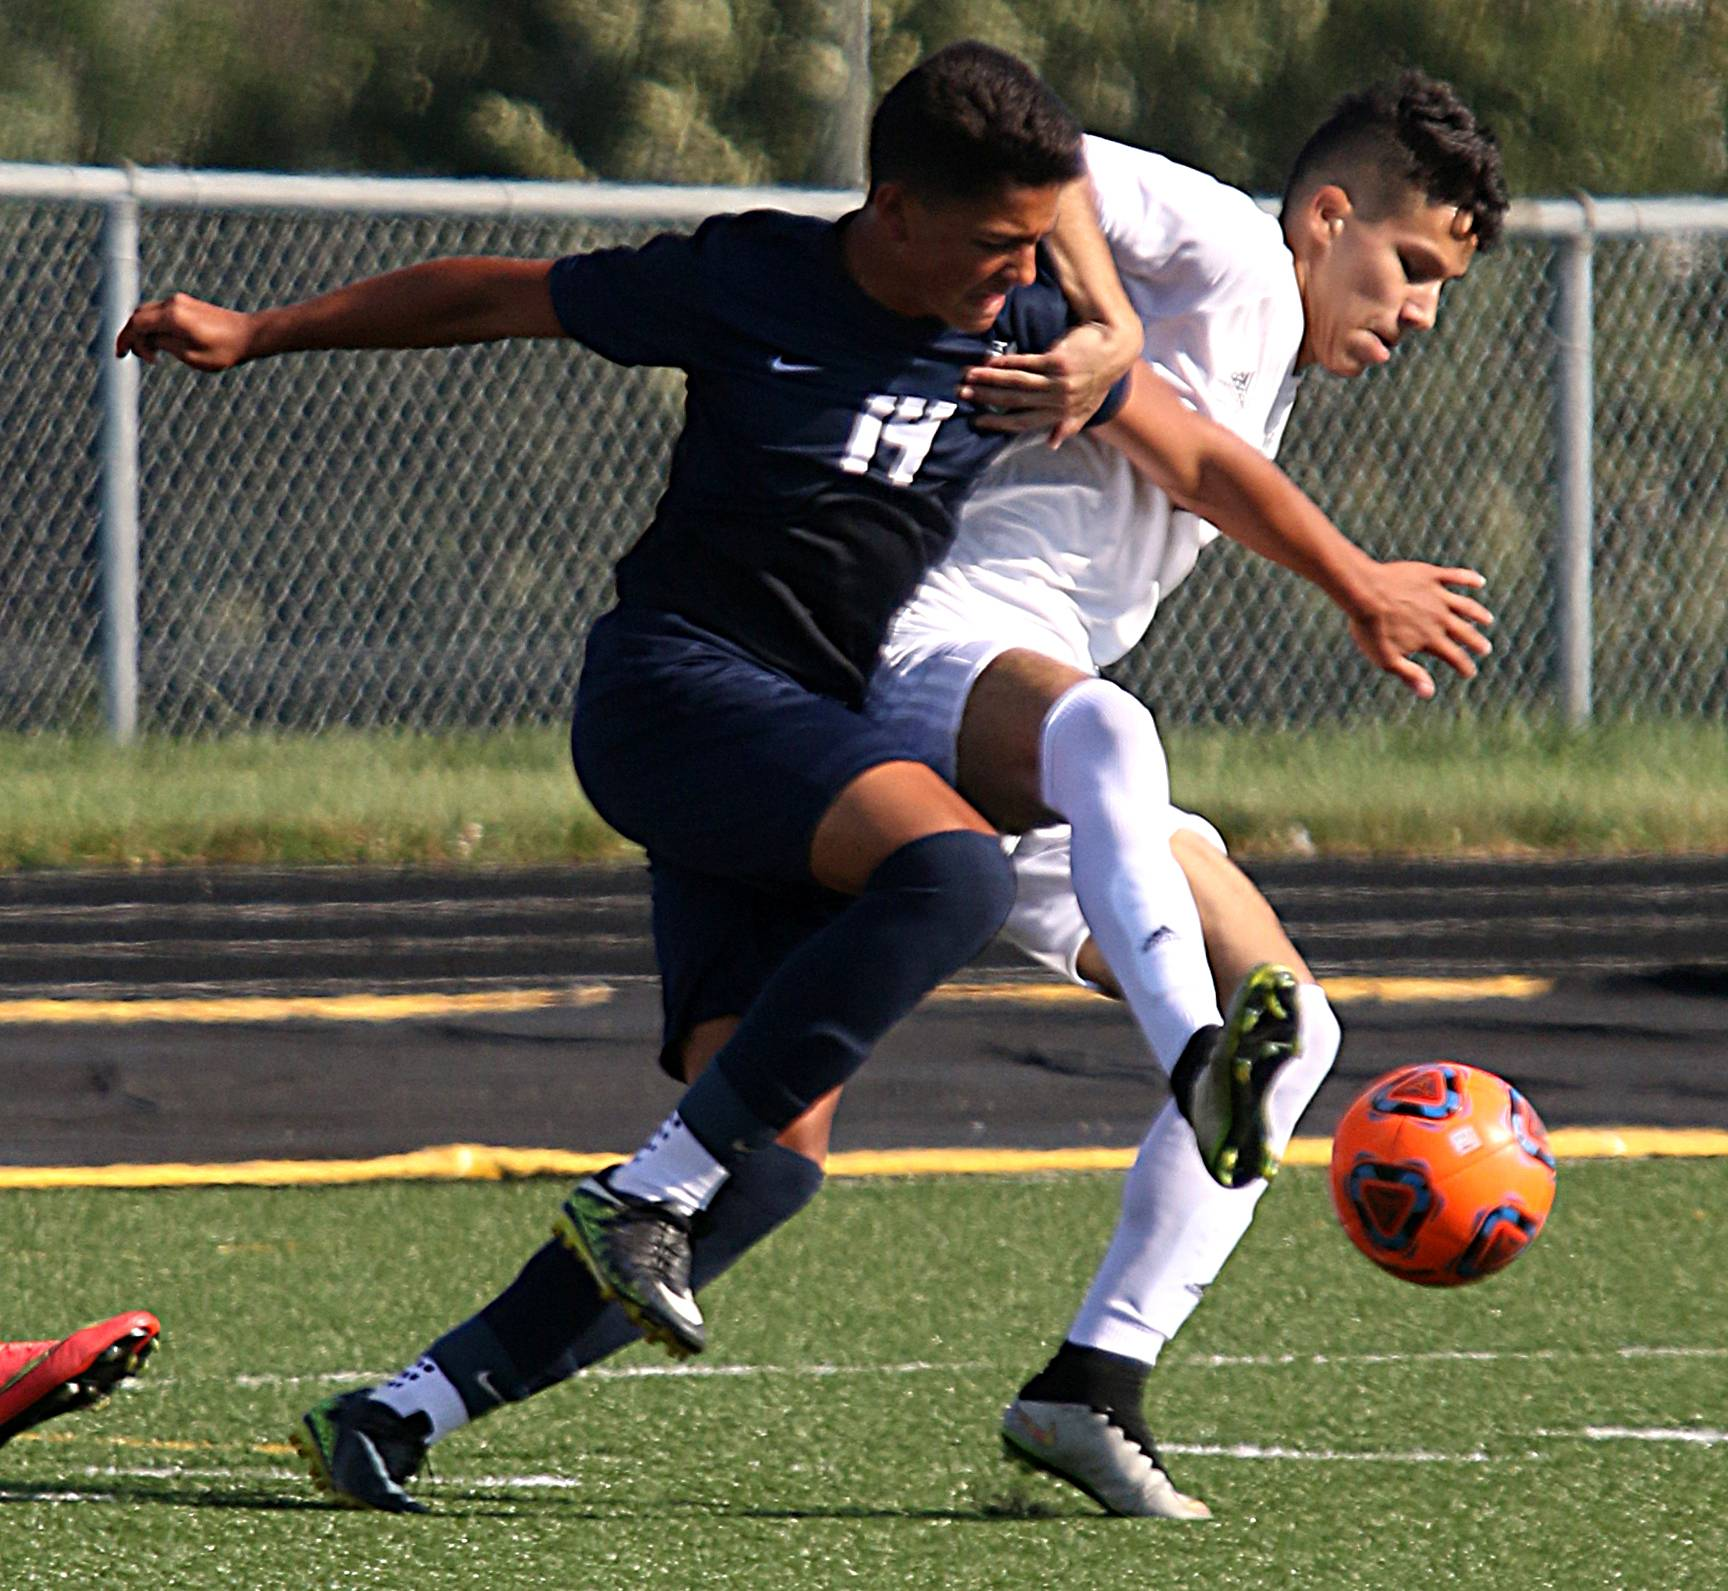 Streamwood's Oscar Chavez, right, races Bartlett's Nicolas Gomez to the ball during soccer action at Millennium Field on the campus of Streamwood High School Tuesday evening.